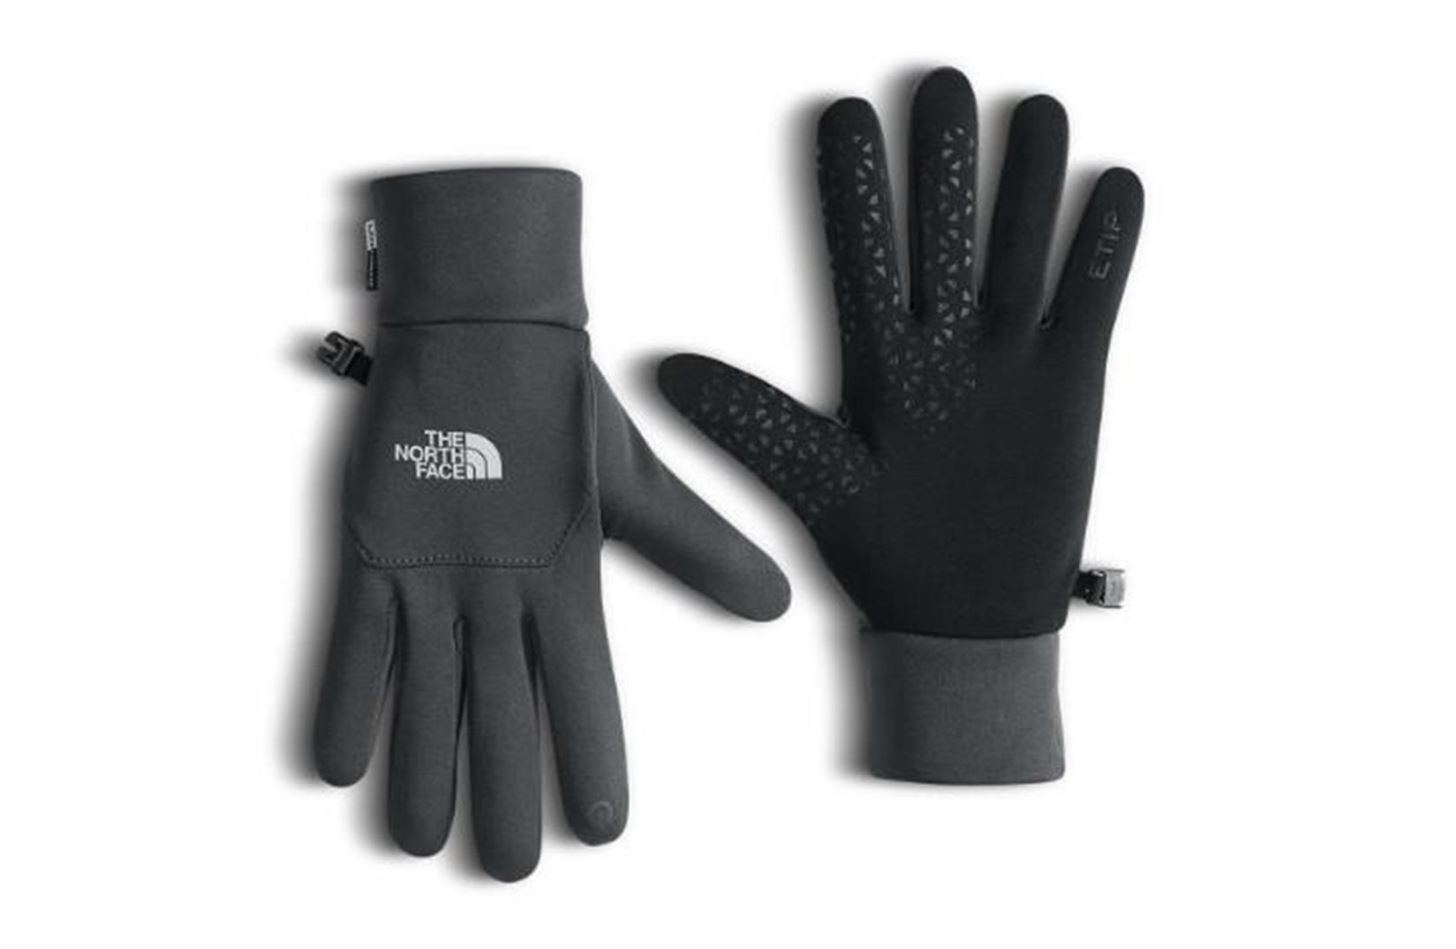 Roundup: The 5 Best Capacitive Gloves for Using Your Smartphone in the Cold